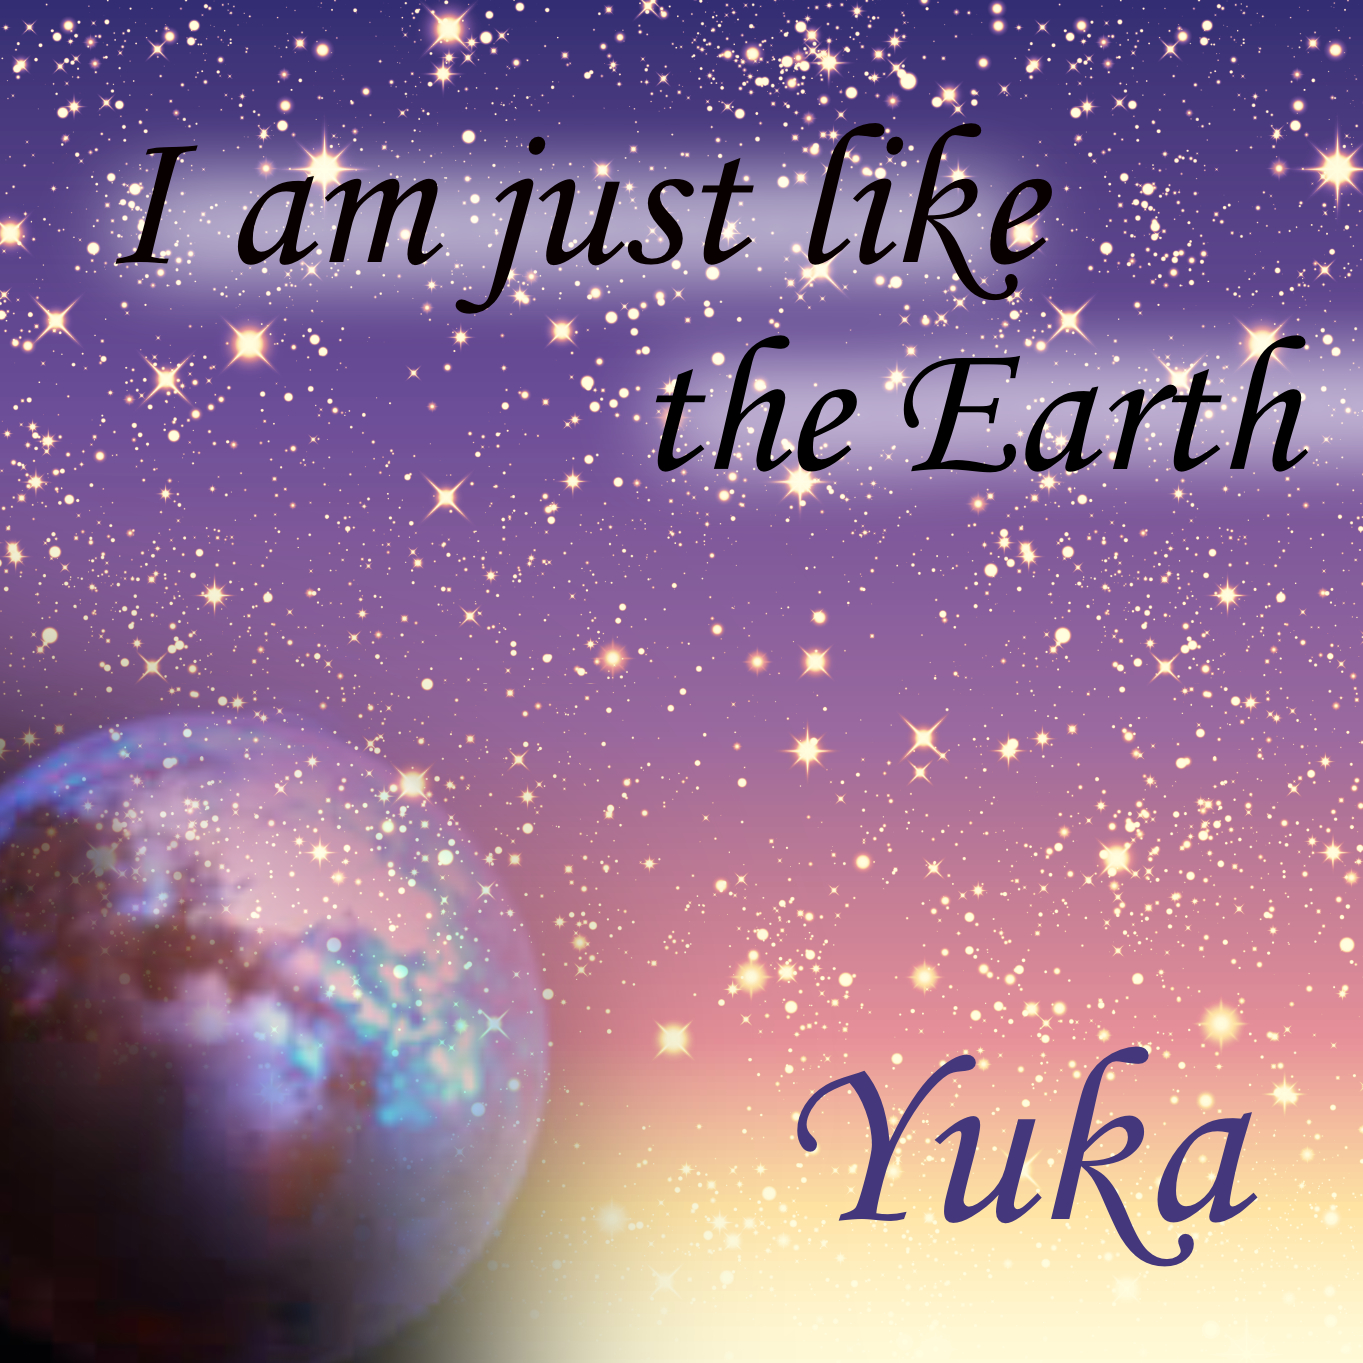 I am just like the Earth